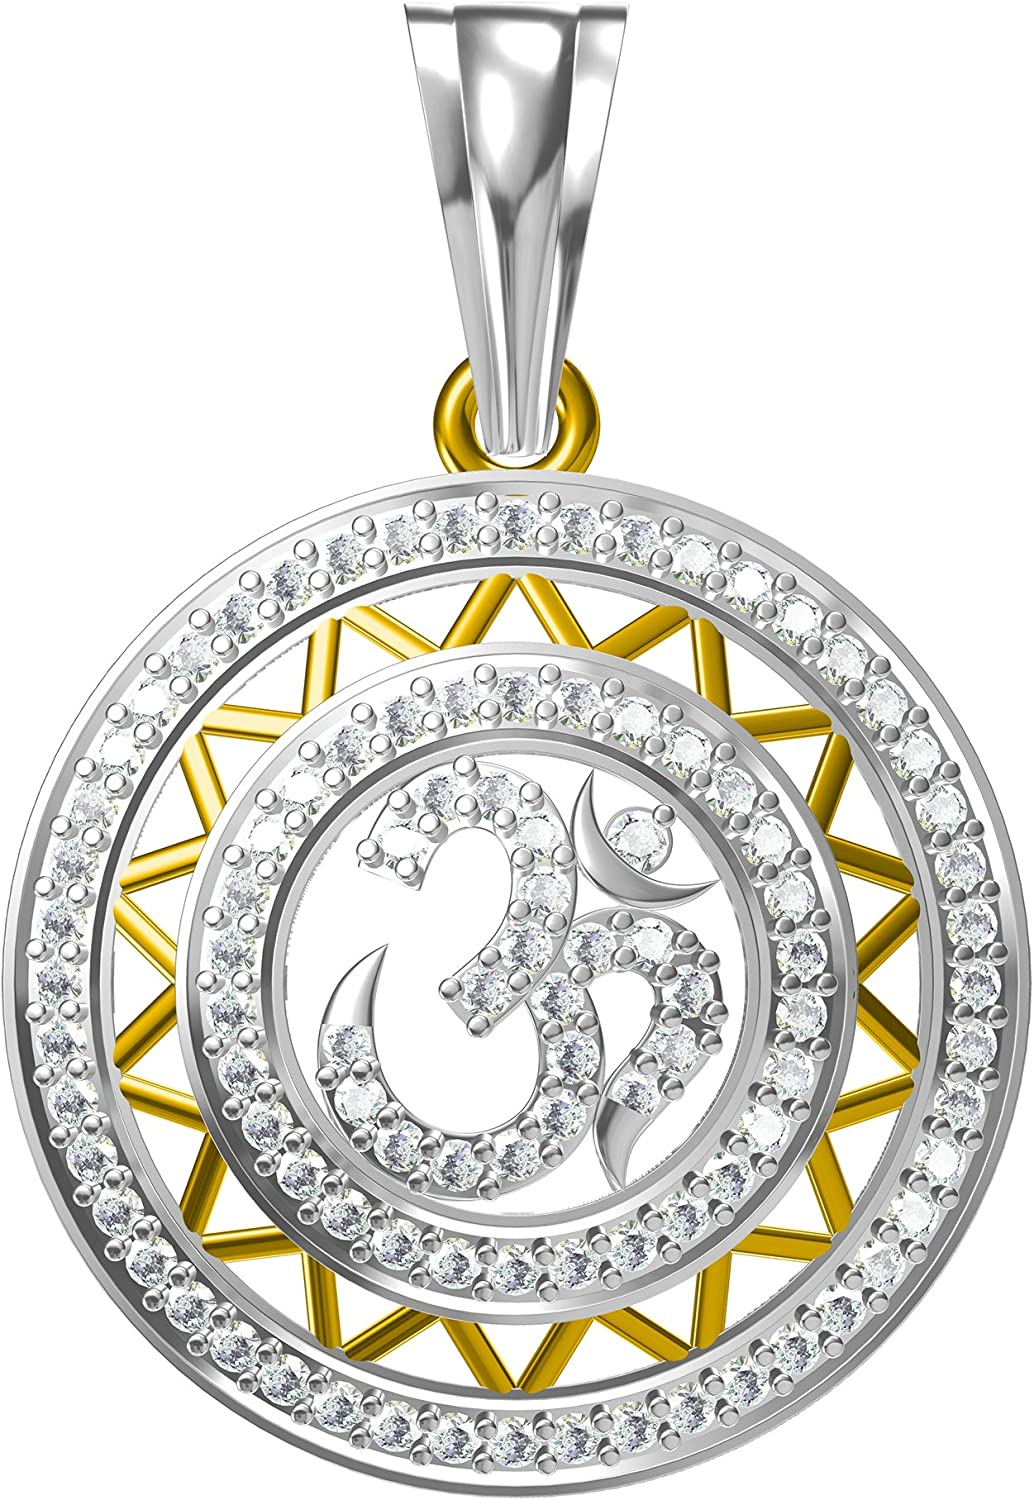 14K Yellow Gold Plated Simulated Diamond Studded Religious OM Pendant Necklace With Chain Jewelry